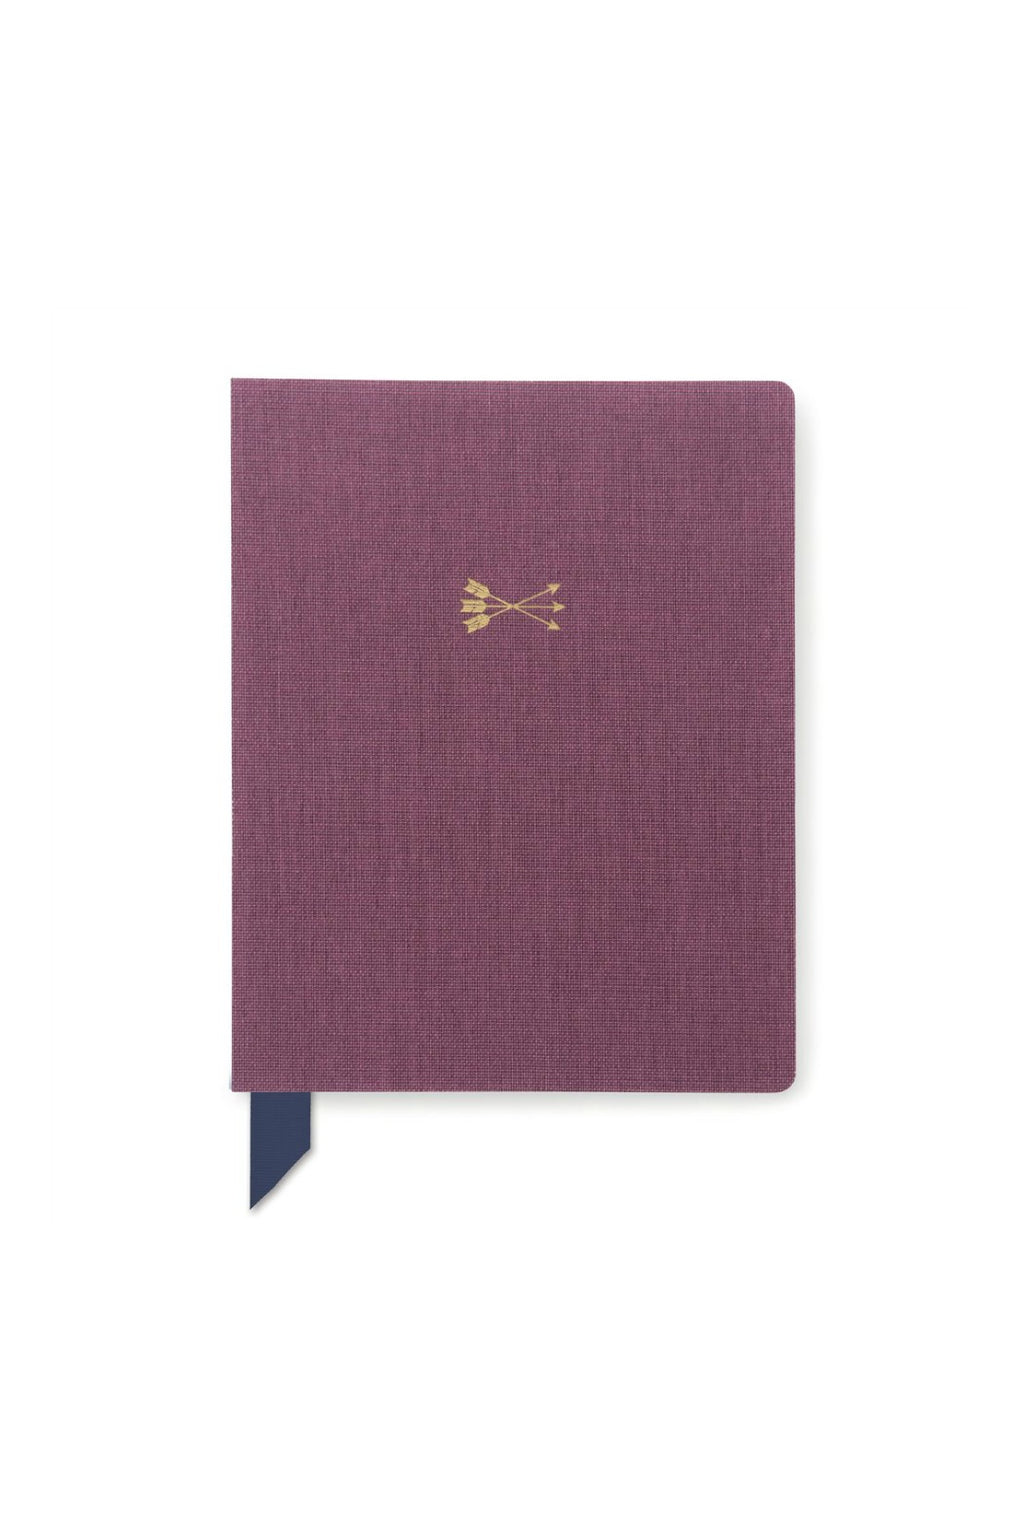 Designworks Ink Exposed Spine Perpetual Planner - Purple Arrows